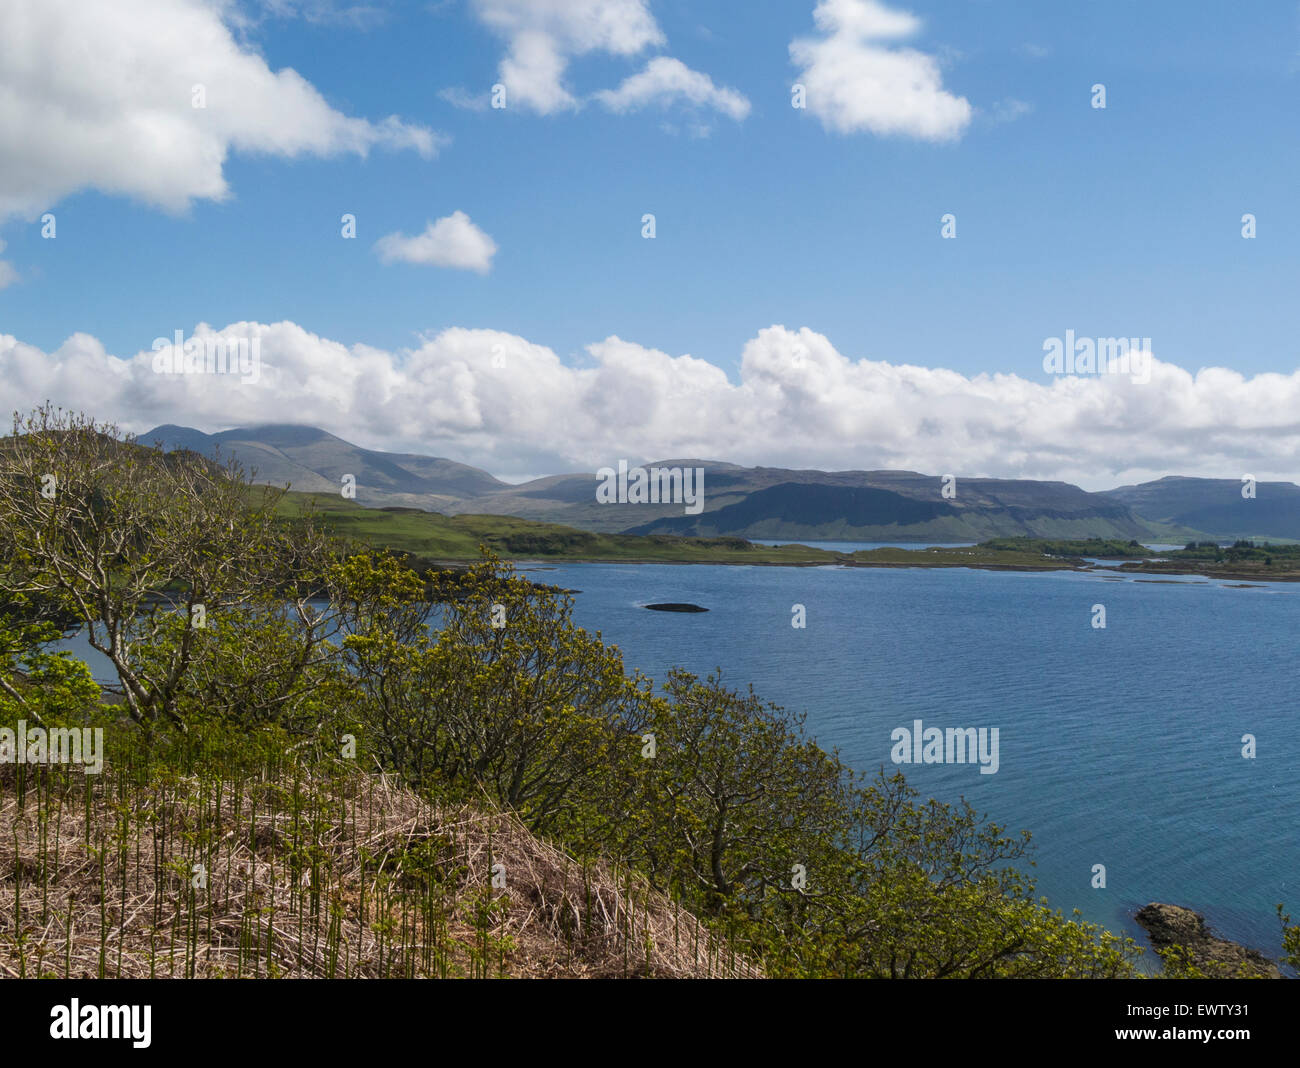 View across Loch Tuath to Island of Ulva Isle of Mull Argyll and Bute Scotland on a lovely June day weather blue - Stock Image